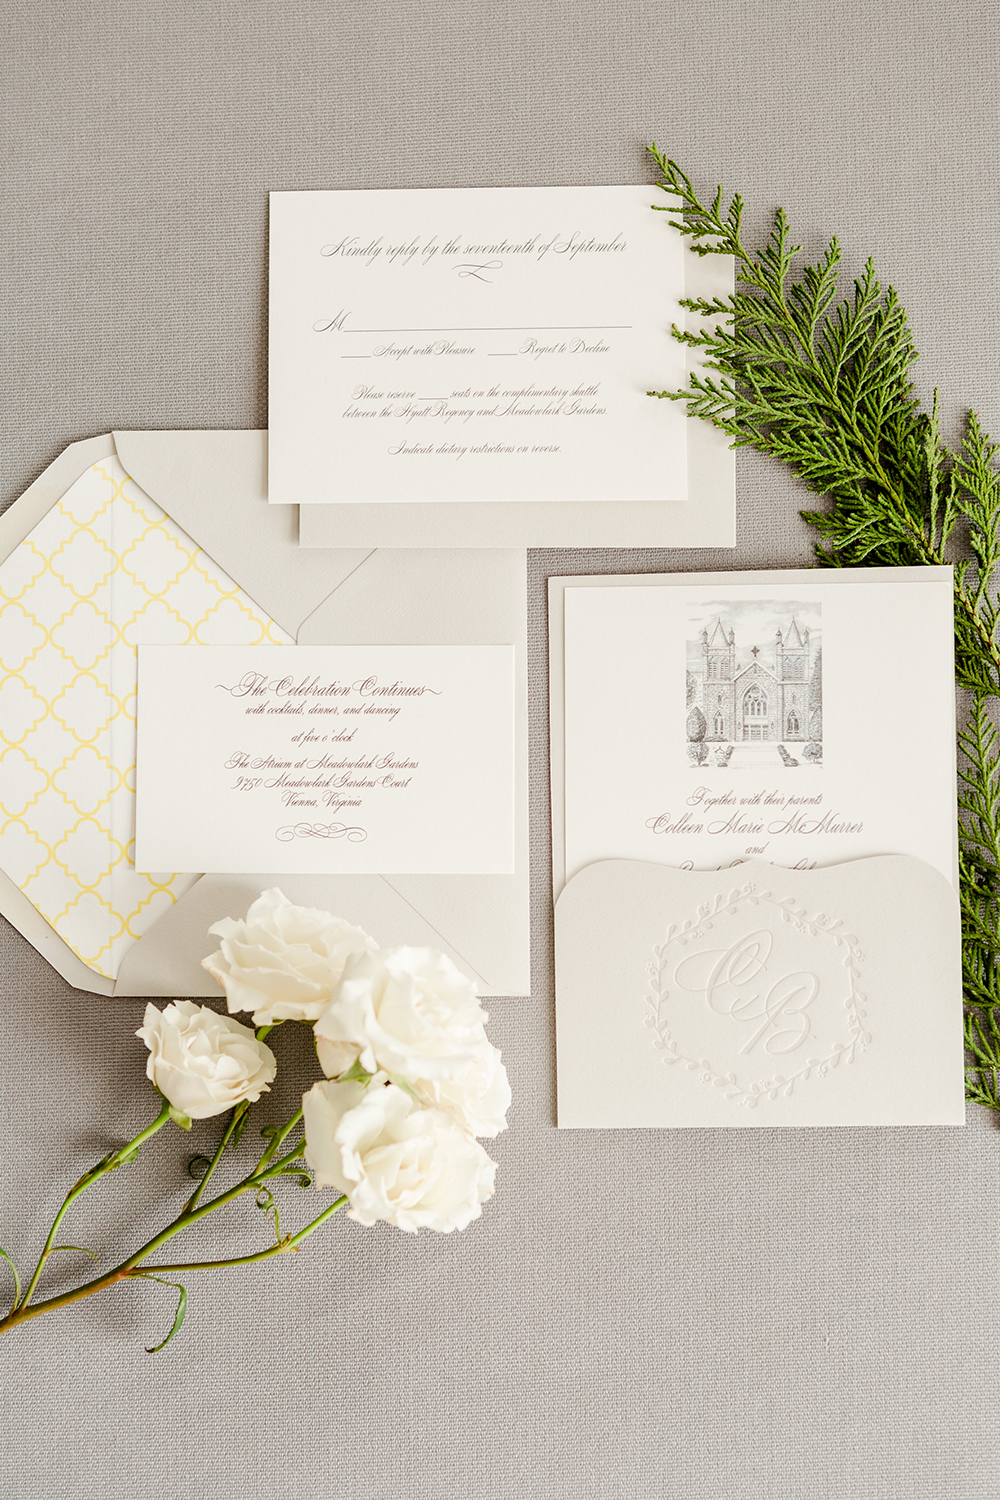 The bride's father's artwork of their ceremony church is the centerpiece for this stunning custom invitation that also features a letterpresses monogram on the pocket.